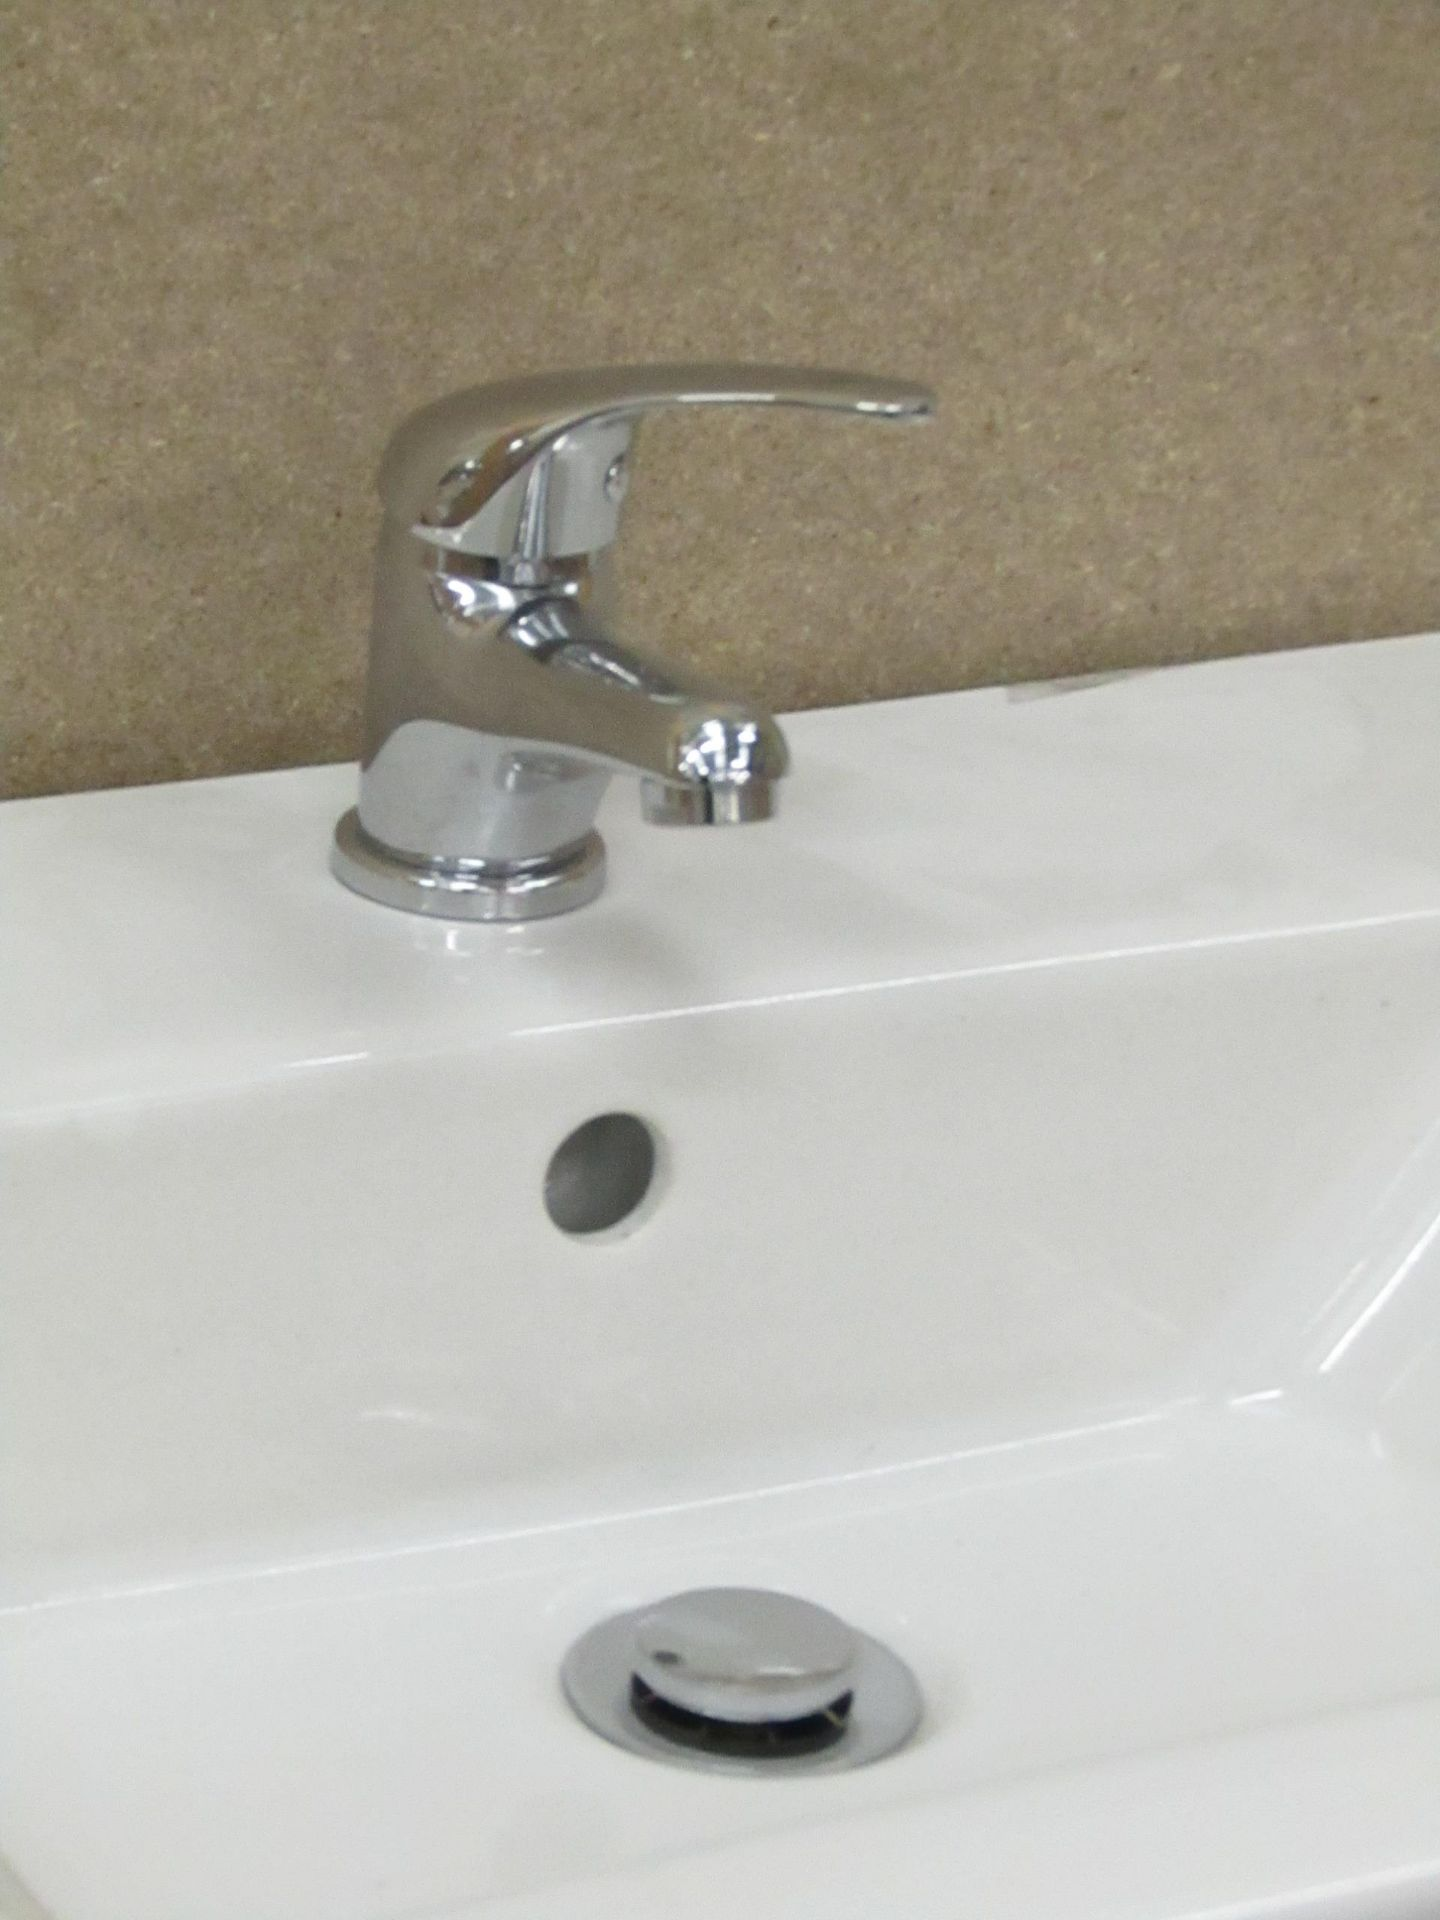 Lot 54 - Unbranded Roca Mono Block Sink tap with Click Clack Waste, new.Sink not included